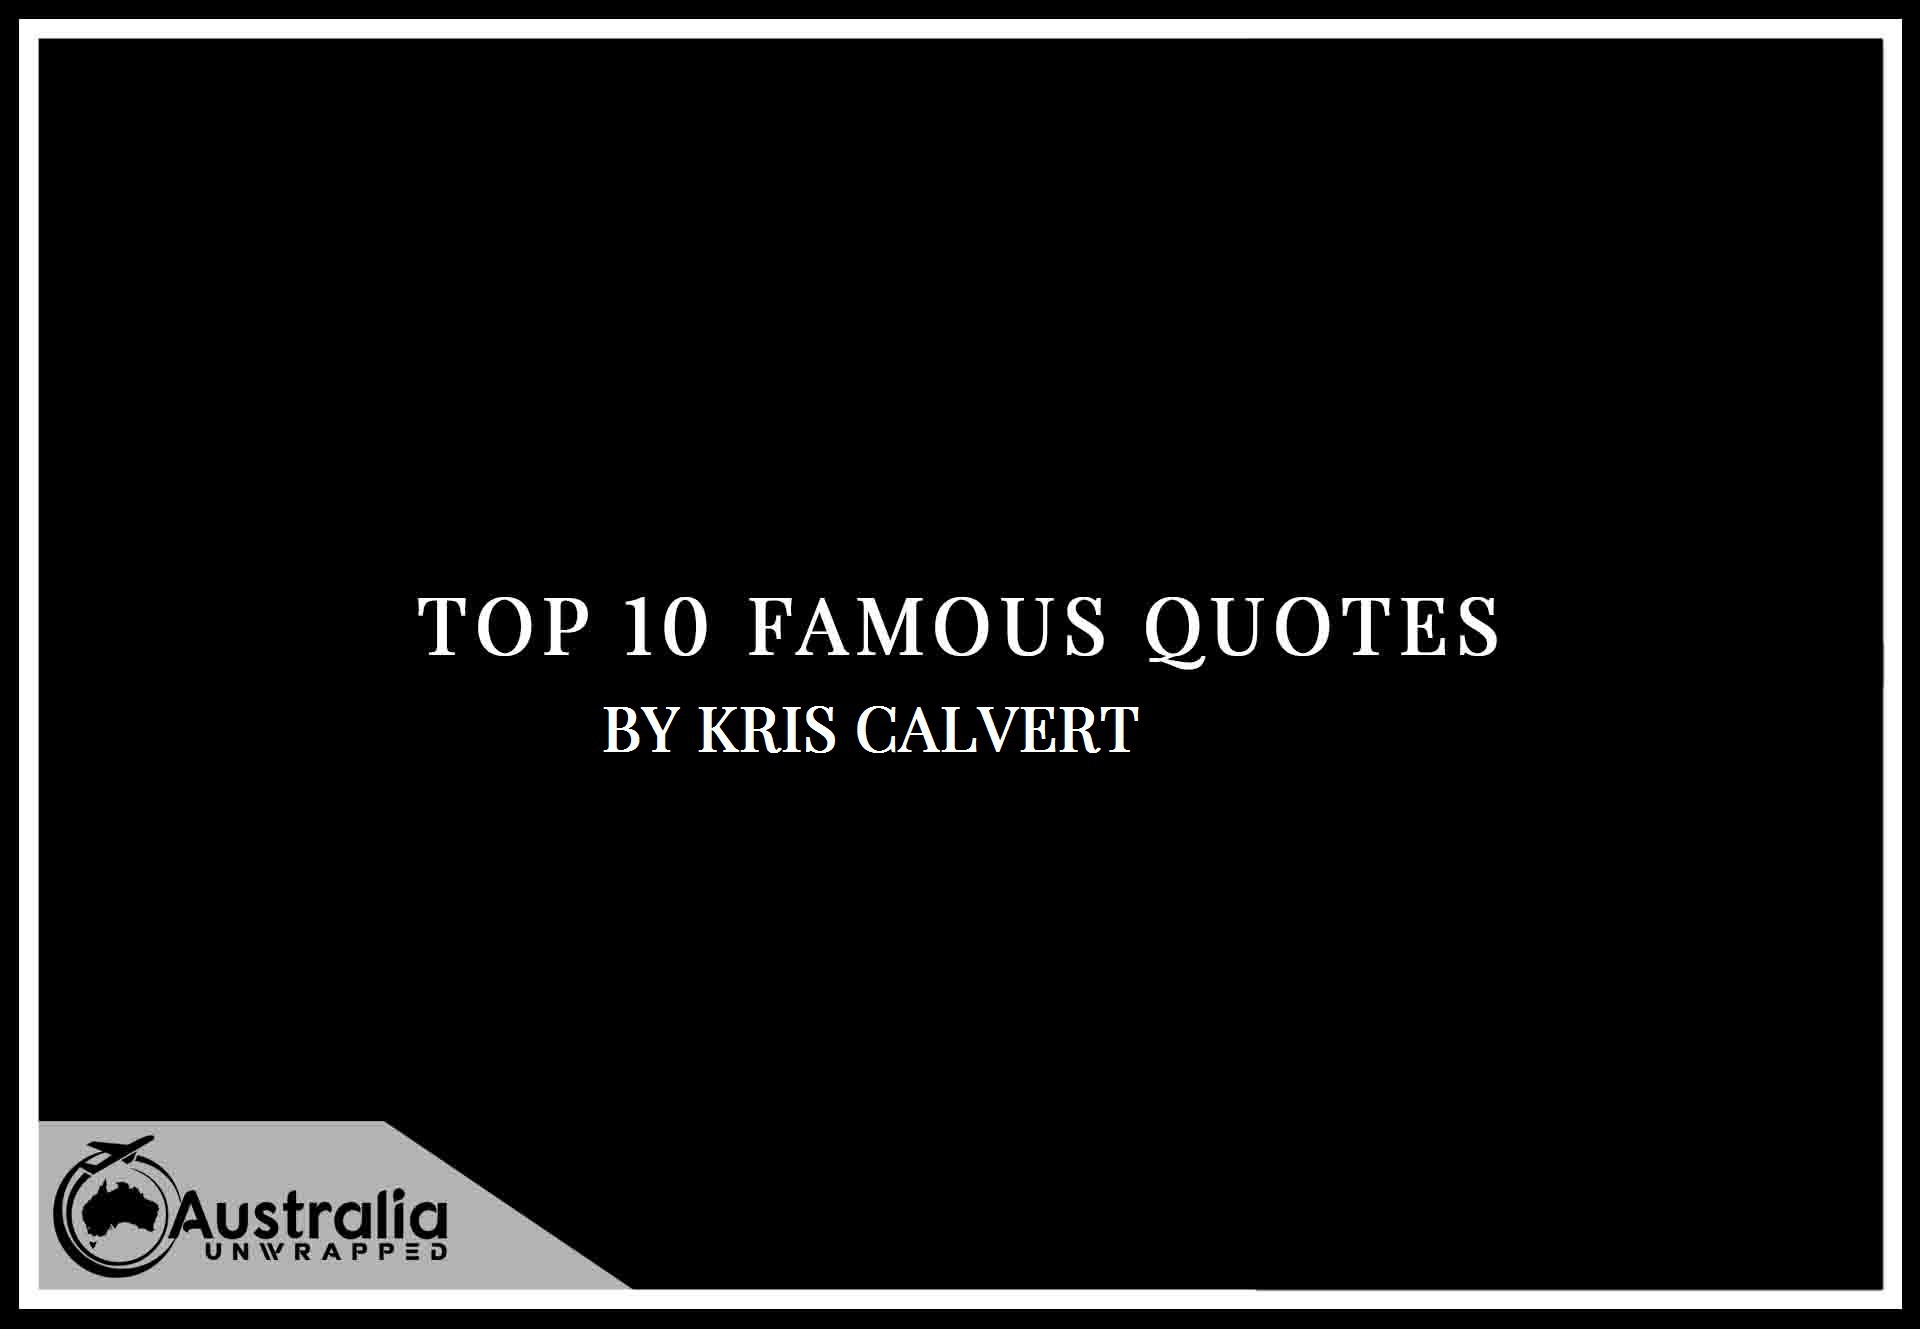 Kris Calvert's Top 10 Popular and Famous Quotes